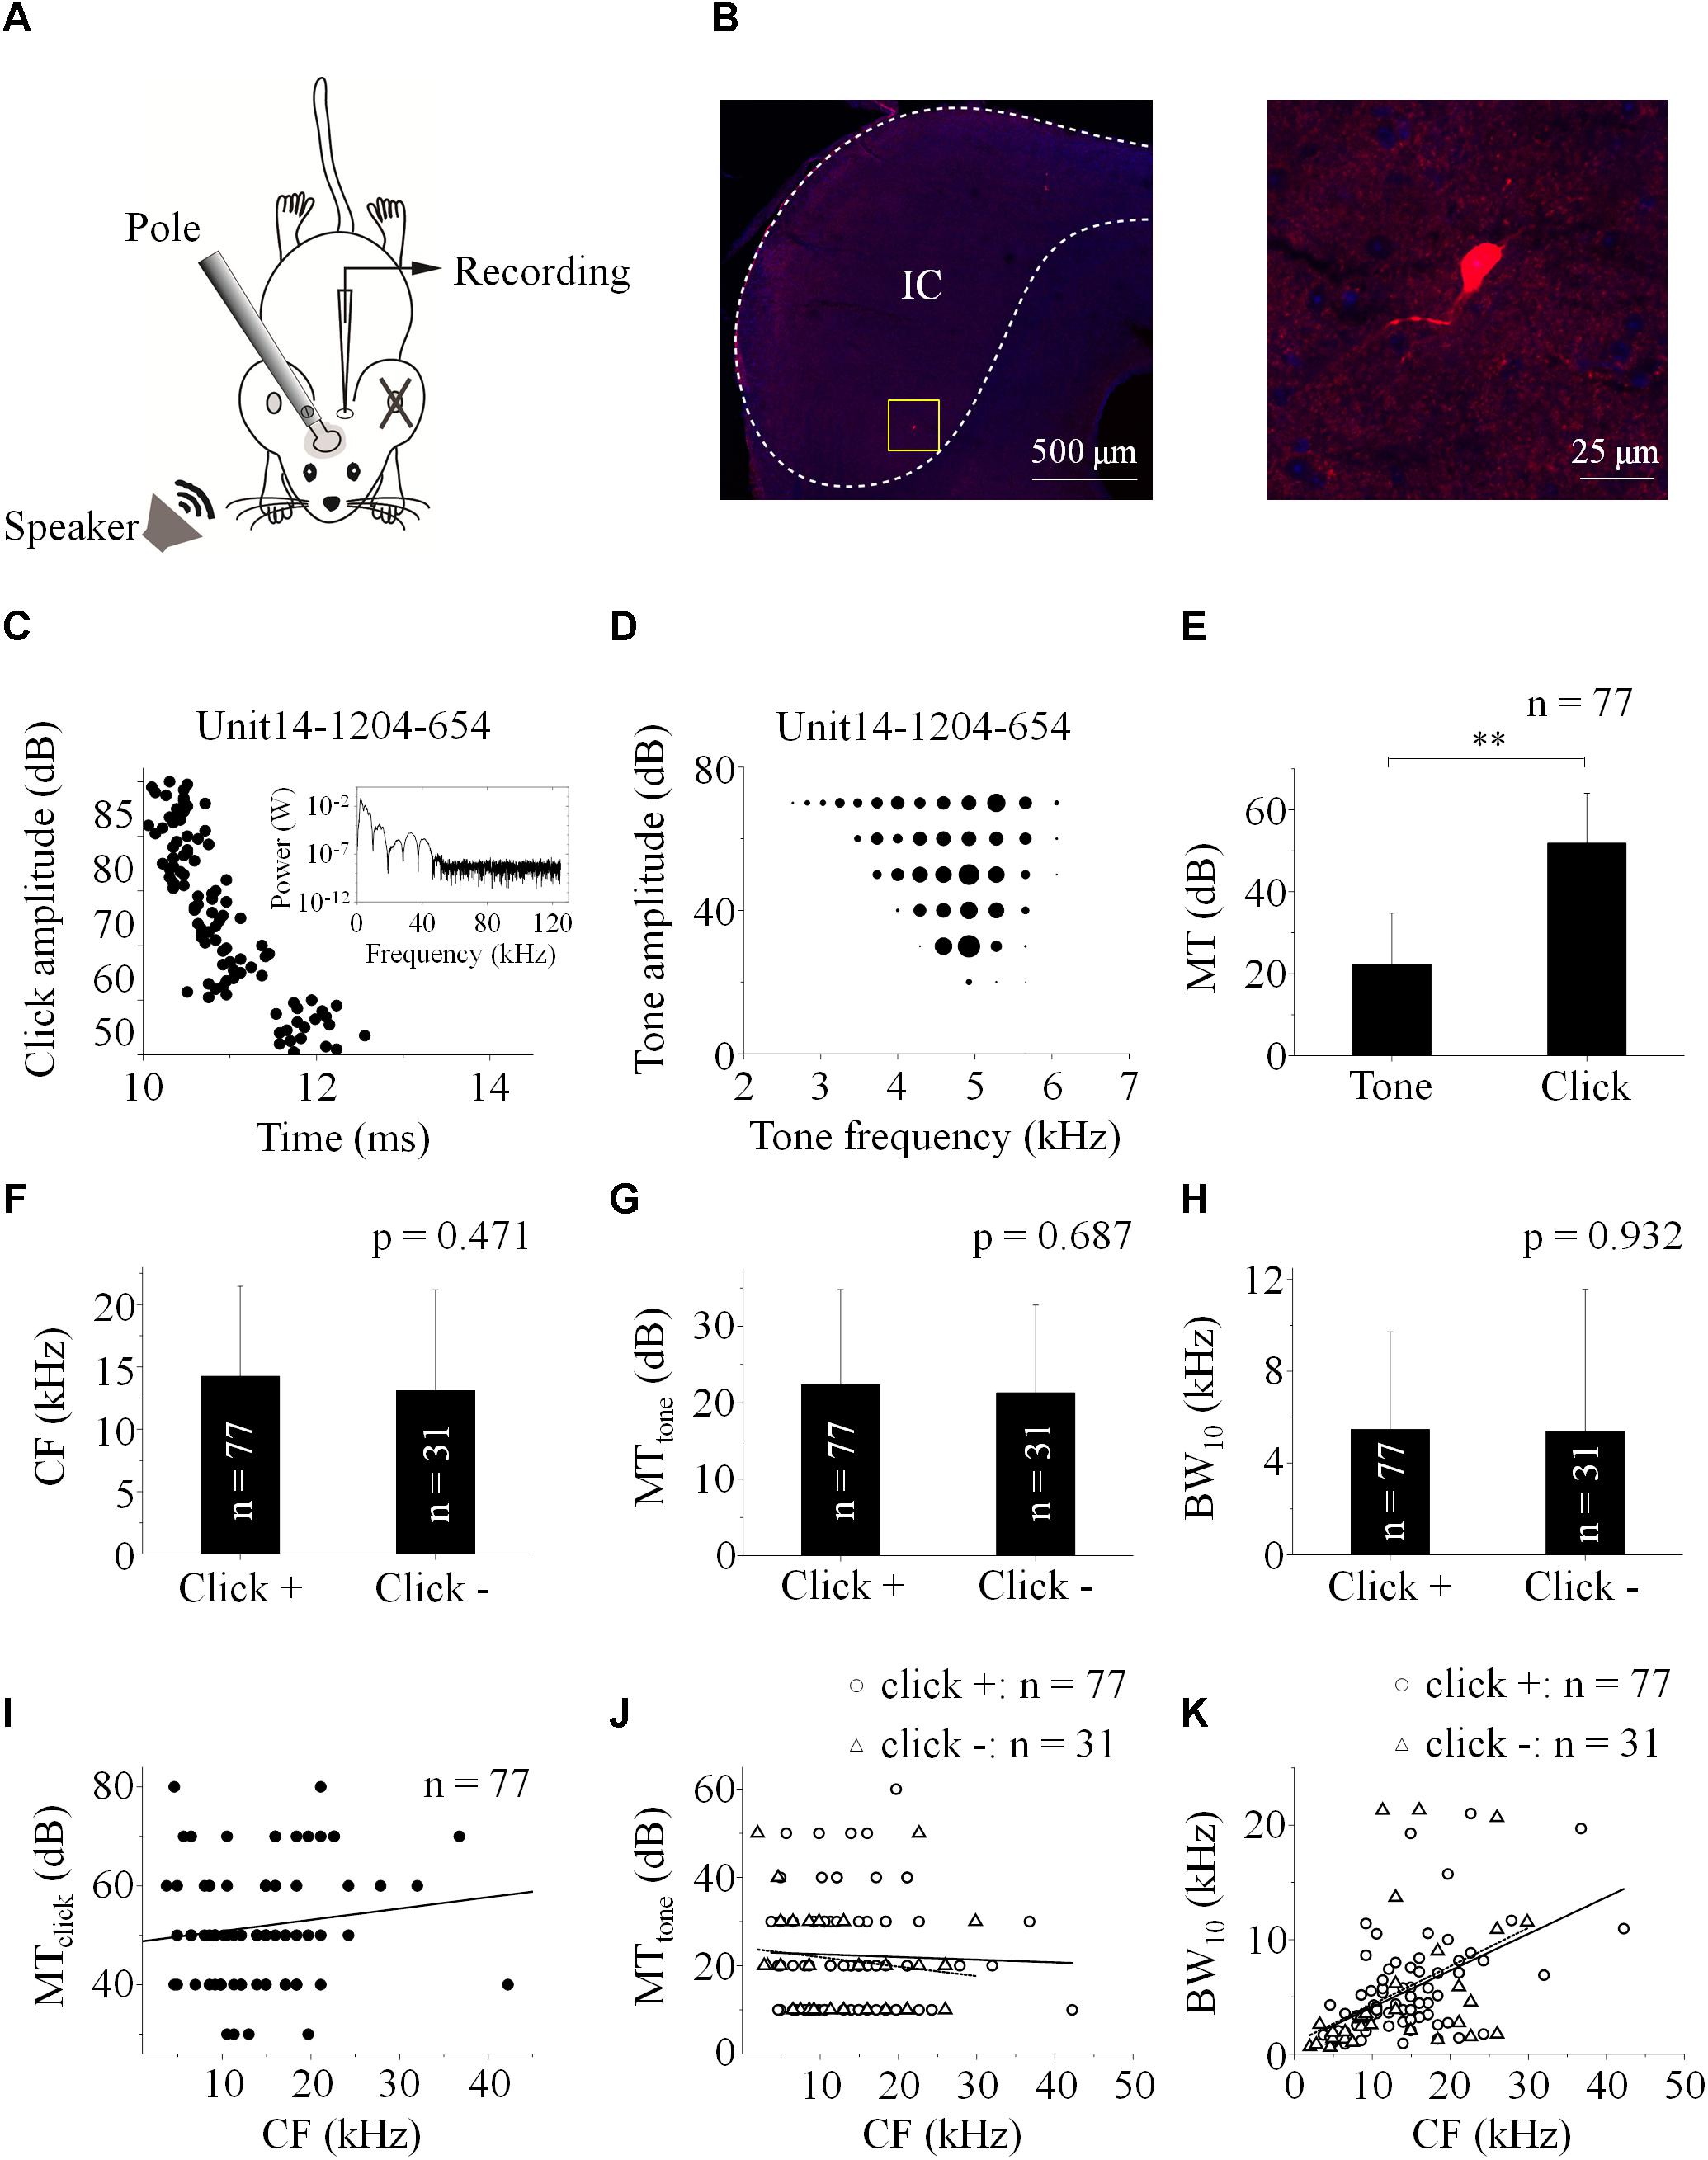 Frontiers | Processing of Paired Click-Tone Stimulation in